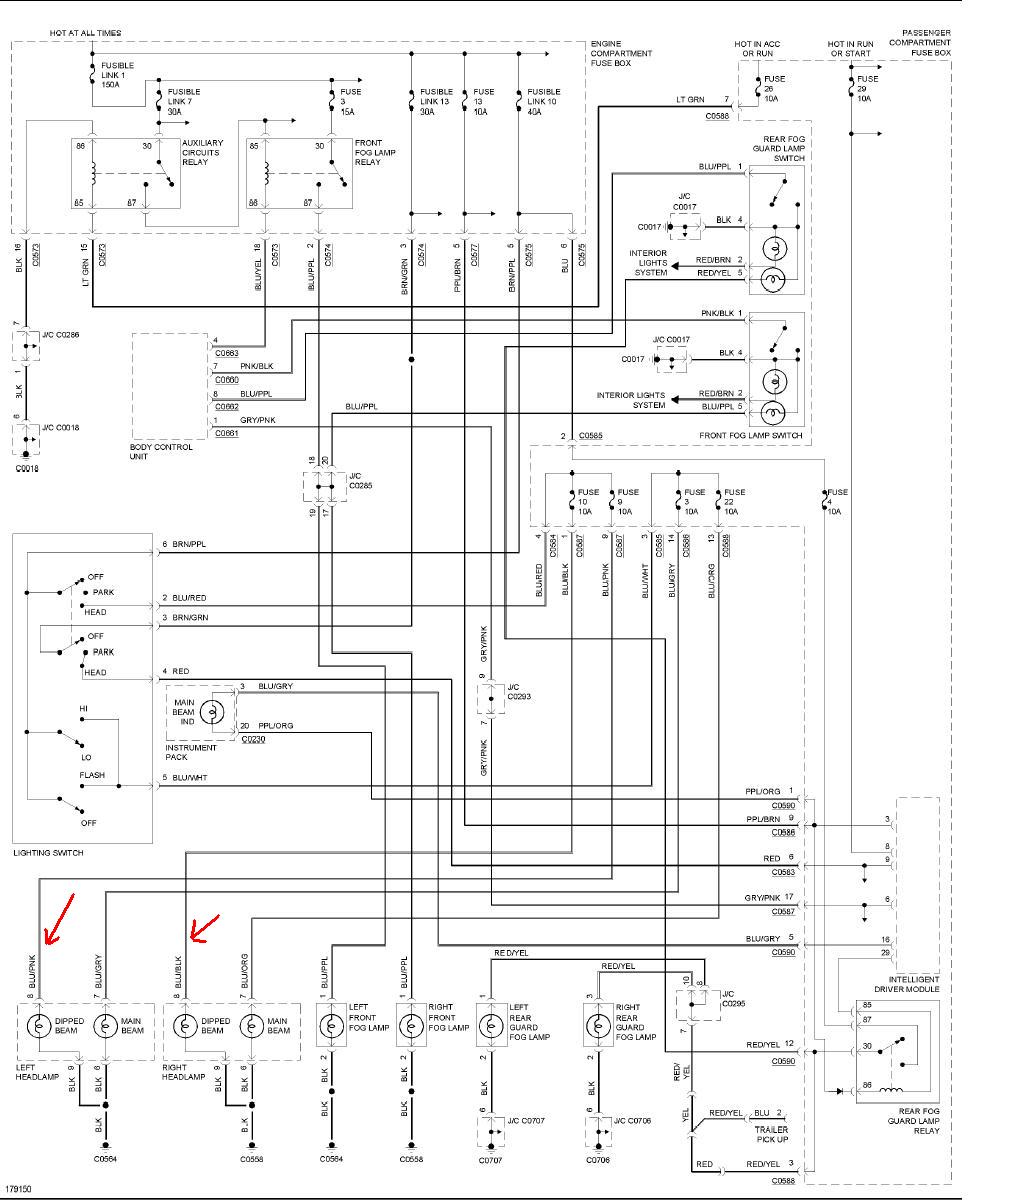 2002 mitsubishi lancer stereo wiring diagram 2002 2002 mitsubishi magna stereo wiring diagram images on 2002 mitsubishi lancer stereo wiring diagram